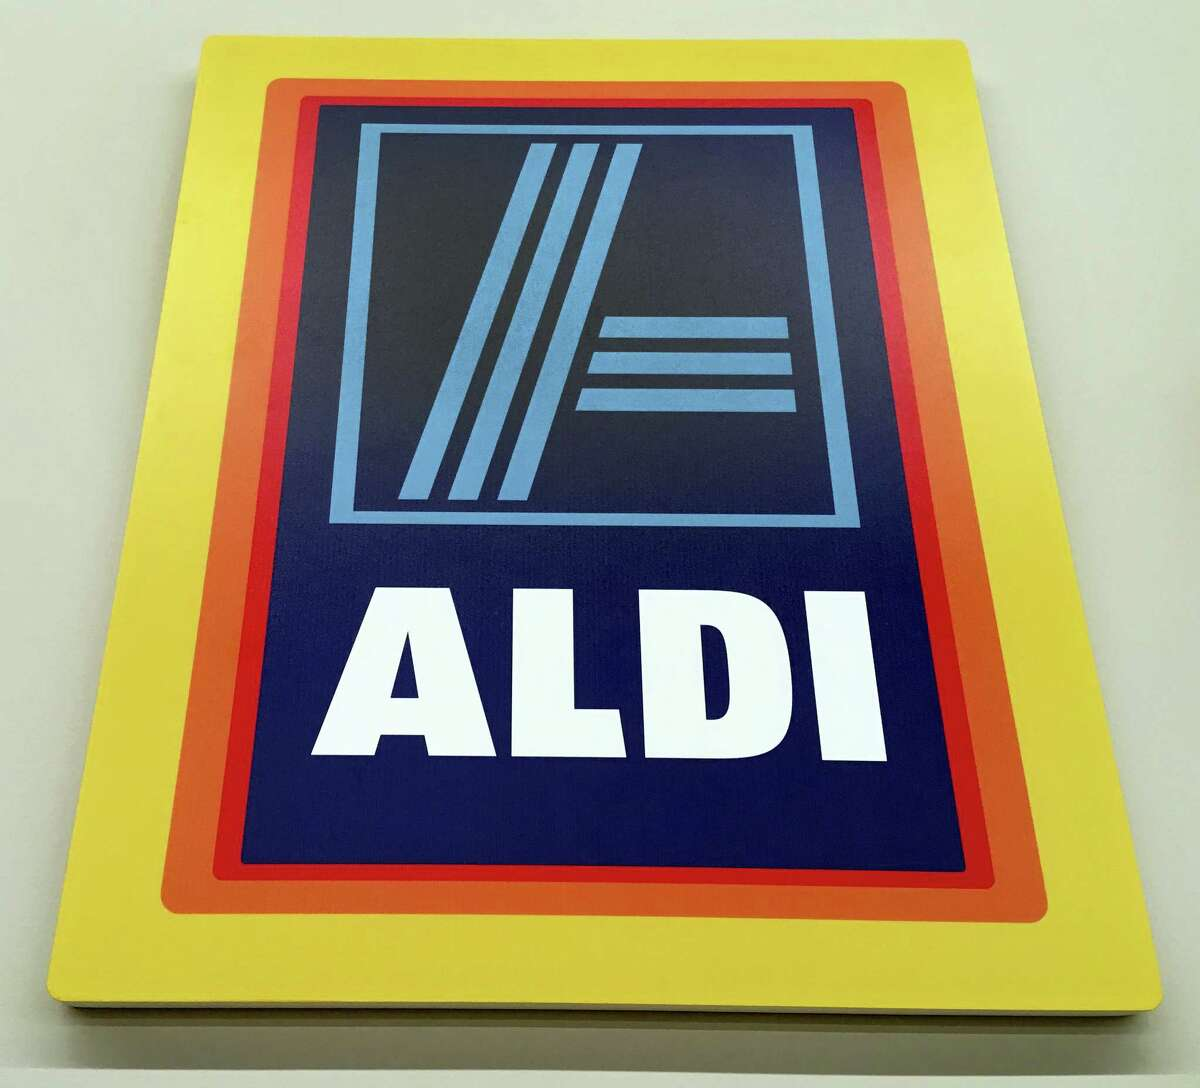 This June 5, 2017, photo, shows signage at an Aldi food market, in Salem, N.H. Discounter Aldi, one of the no-frills European chains that offer low prices but far fewer options, and mostly its own brands, is putting the pressure on traditional grocers. Aldi expects to have 2,500 U.S. stores by the end of 2022. (AP Photo/Elise Amendola)